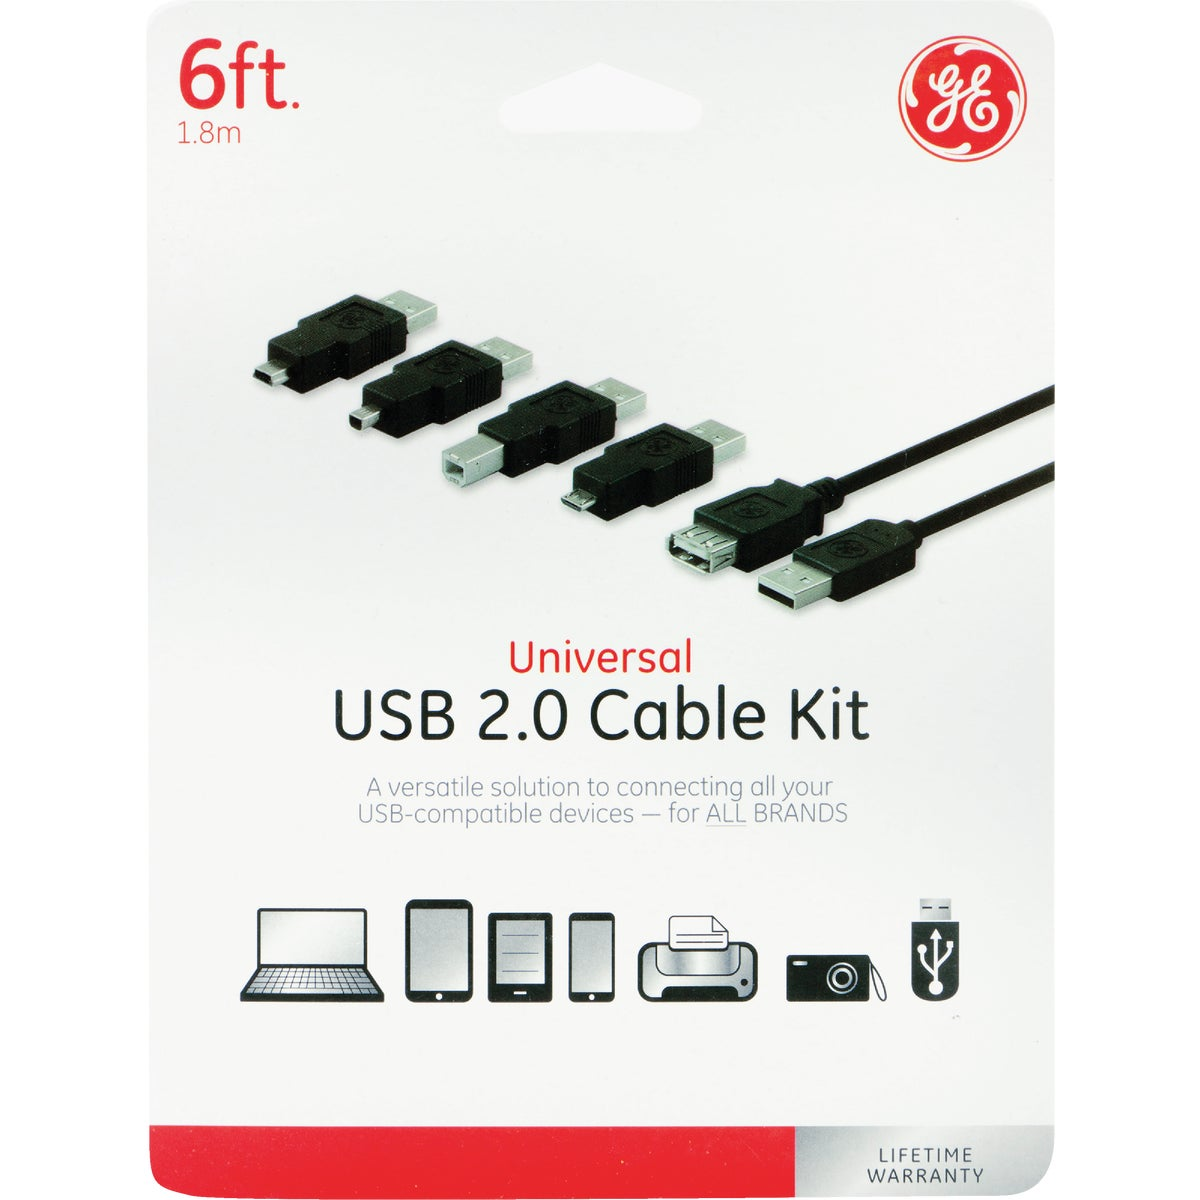 6' 6IN1 USB2.0 CABLE KIT